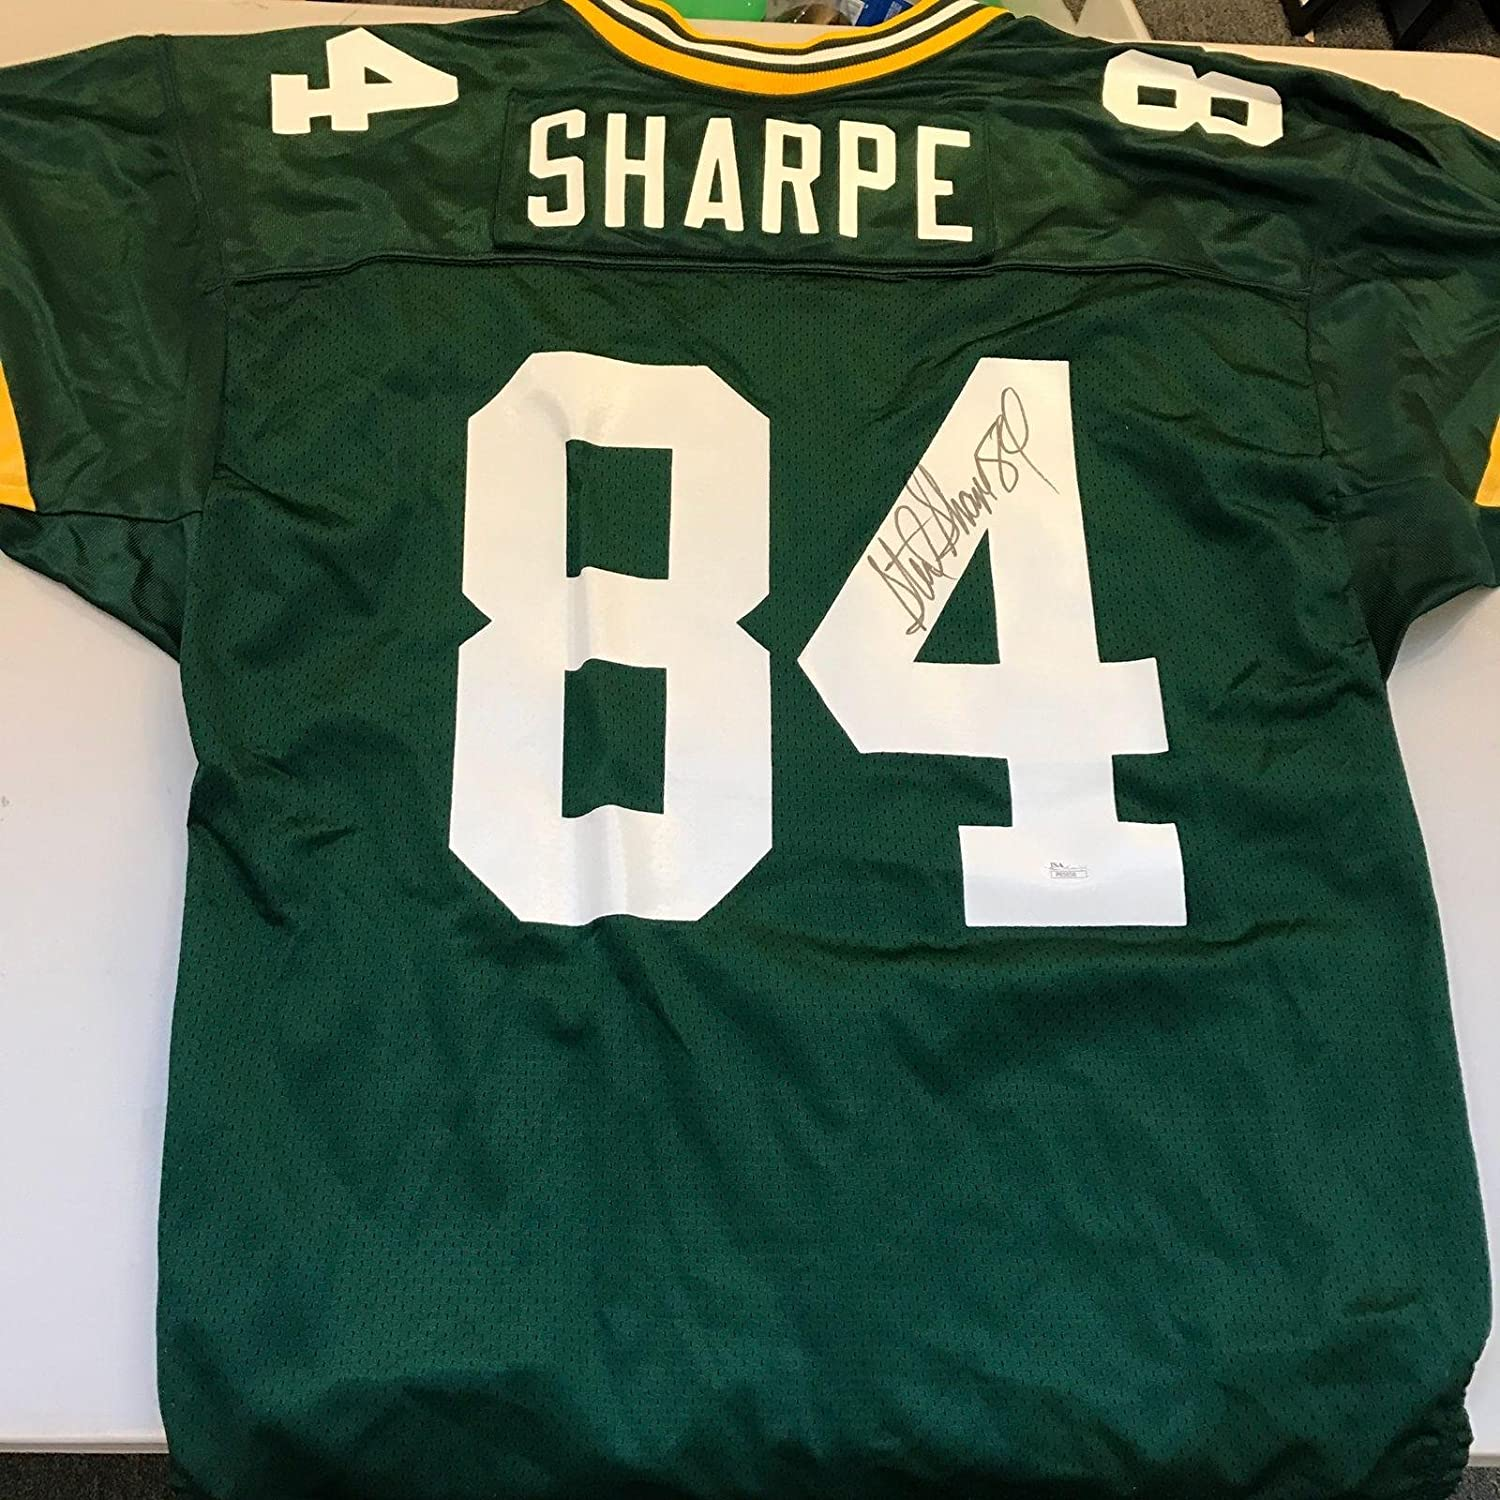 225416f09 Amazon.com  Signed Sterling Sharpe Jersey - 1994 Game Model COA - JSA  Certified - Autographed NFL Jerseys  Sports Collectibles